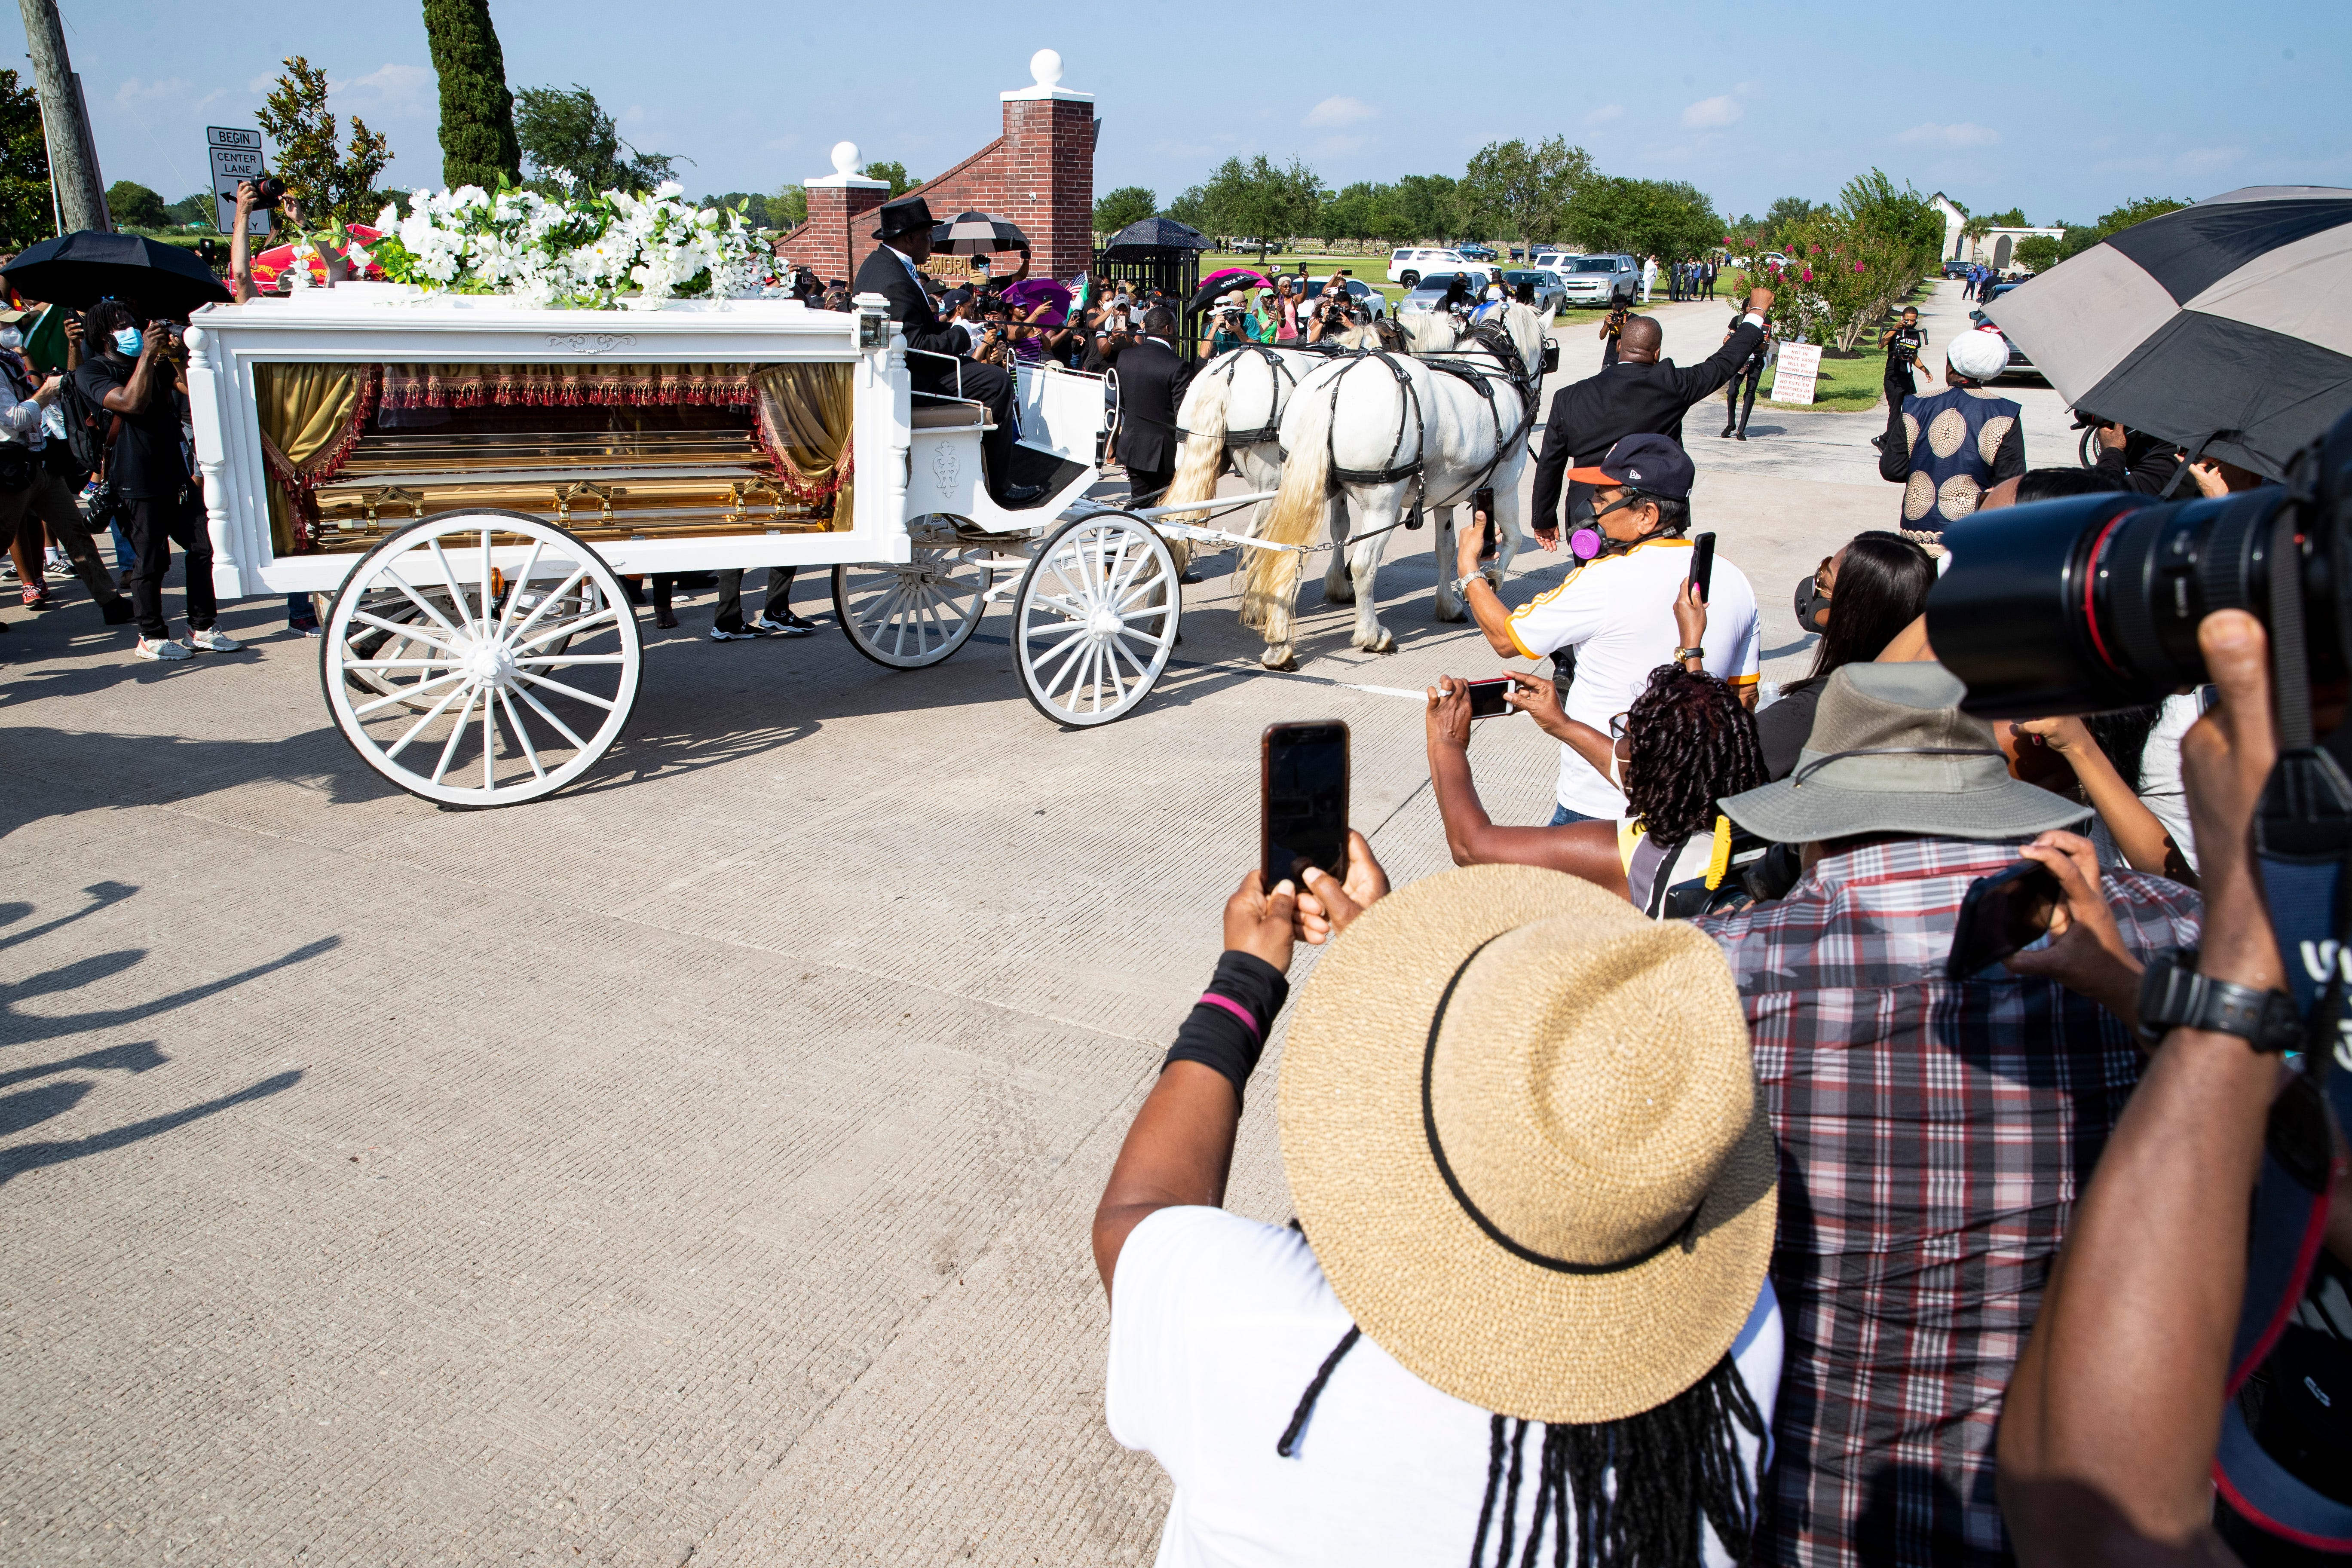 A horse drawn carriage carrying the casket of George Floyd arrives at Houston Memorial Gardens in Pearland, Texas on Tuesday, June 9, 2020.